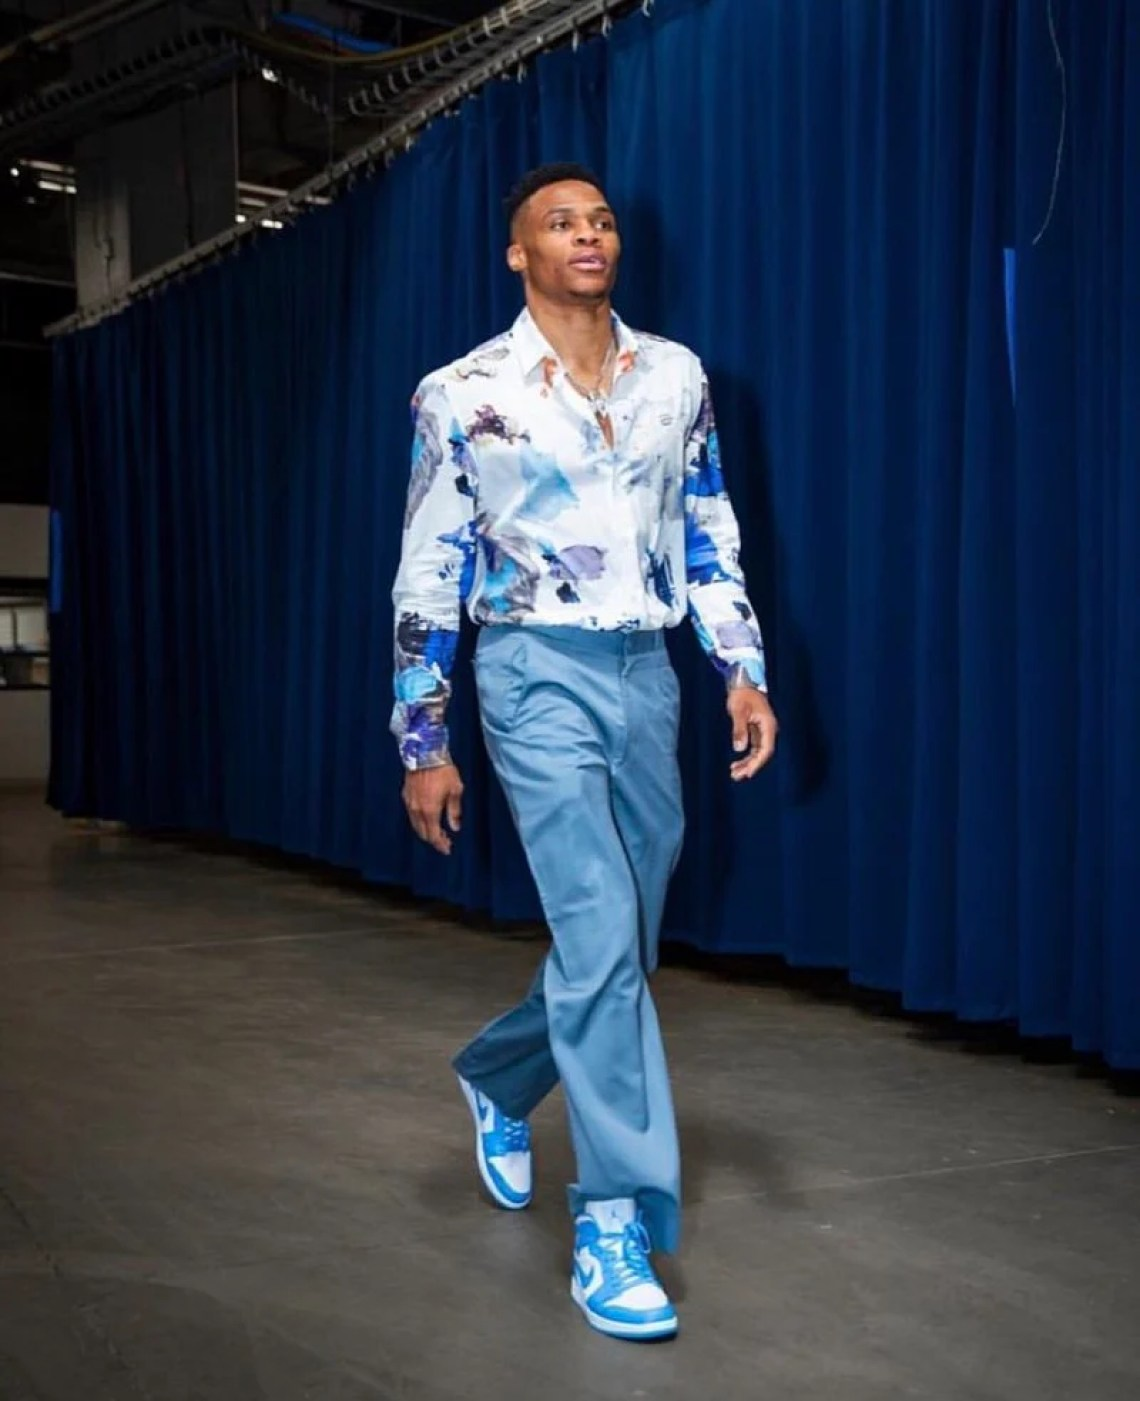 Russell Westbrook loosens up with men's suiting, featuring bright tones, patterns and OFF-WHITE Jordan 1s.